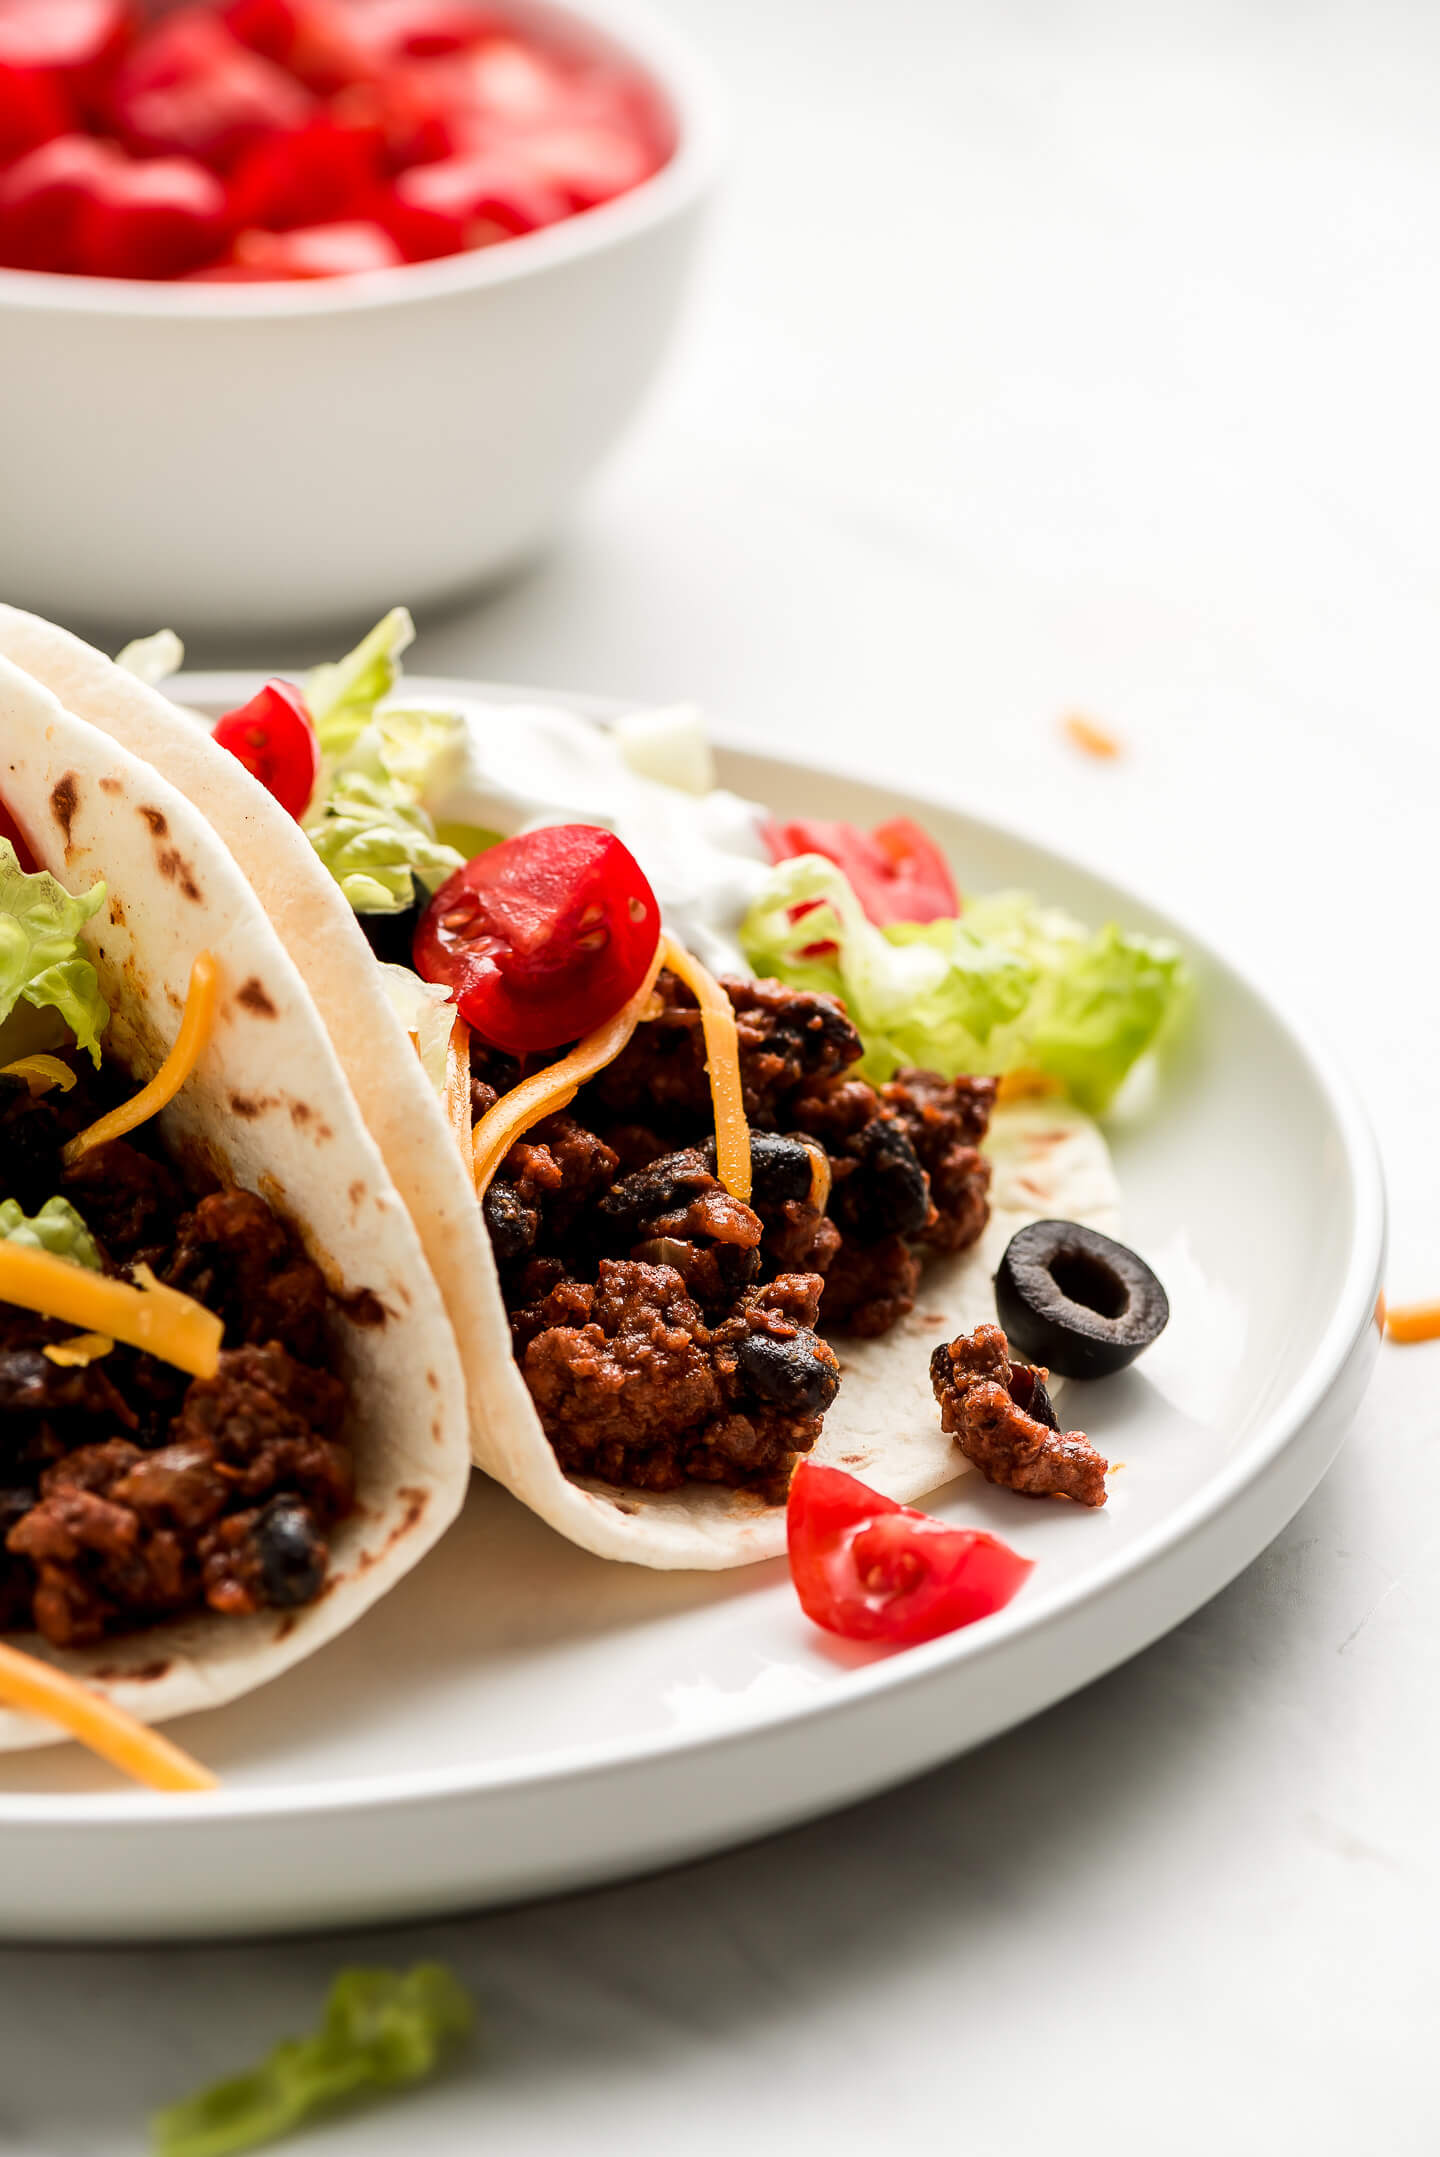 A tortilla filled with ground beef filling and topped with lettuce, tomatoes, cheese, and sour cream.